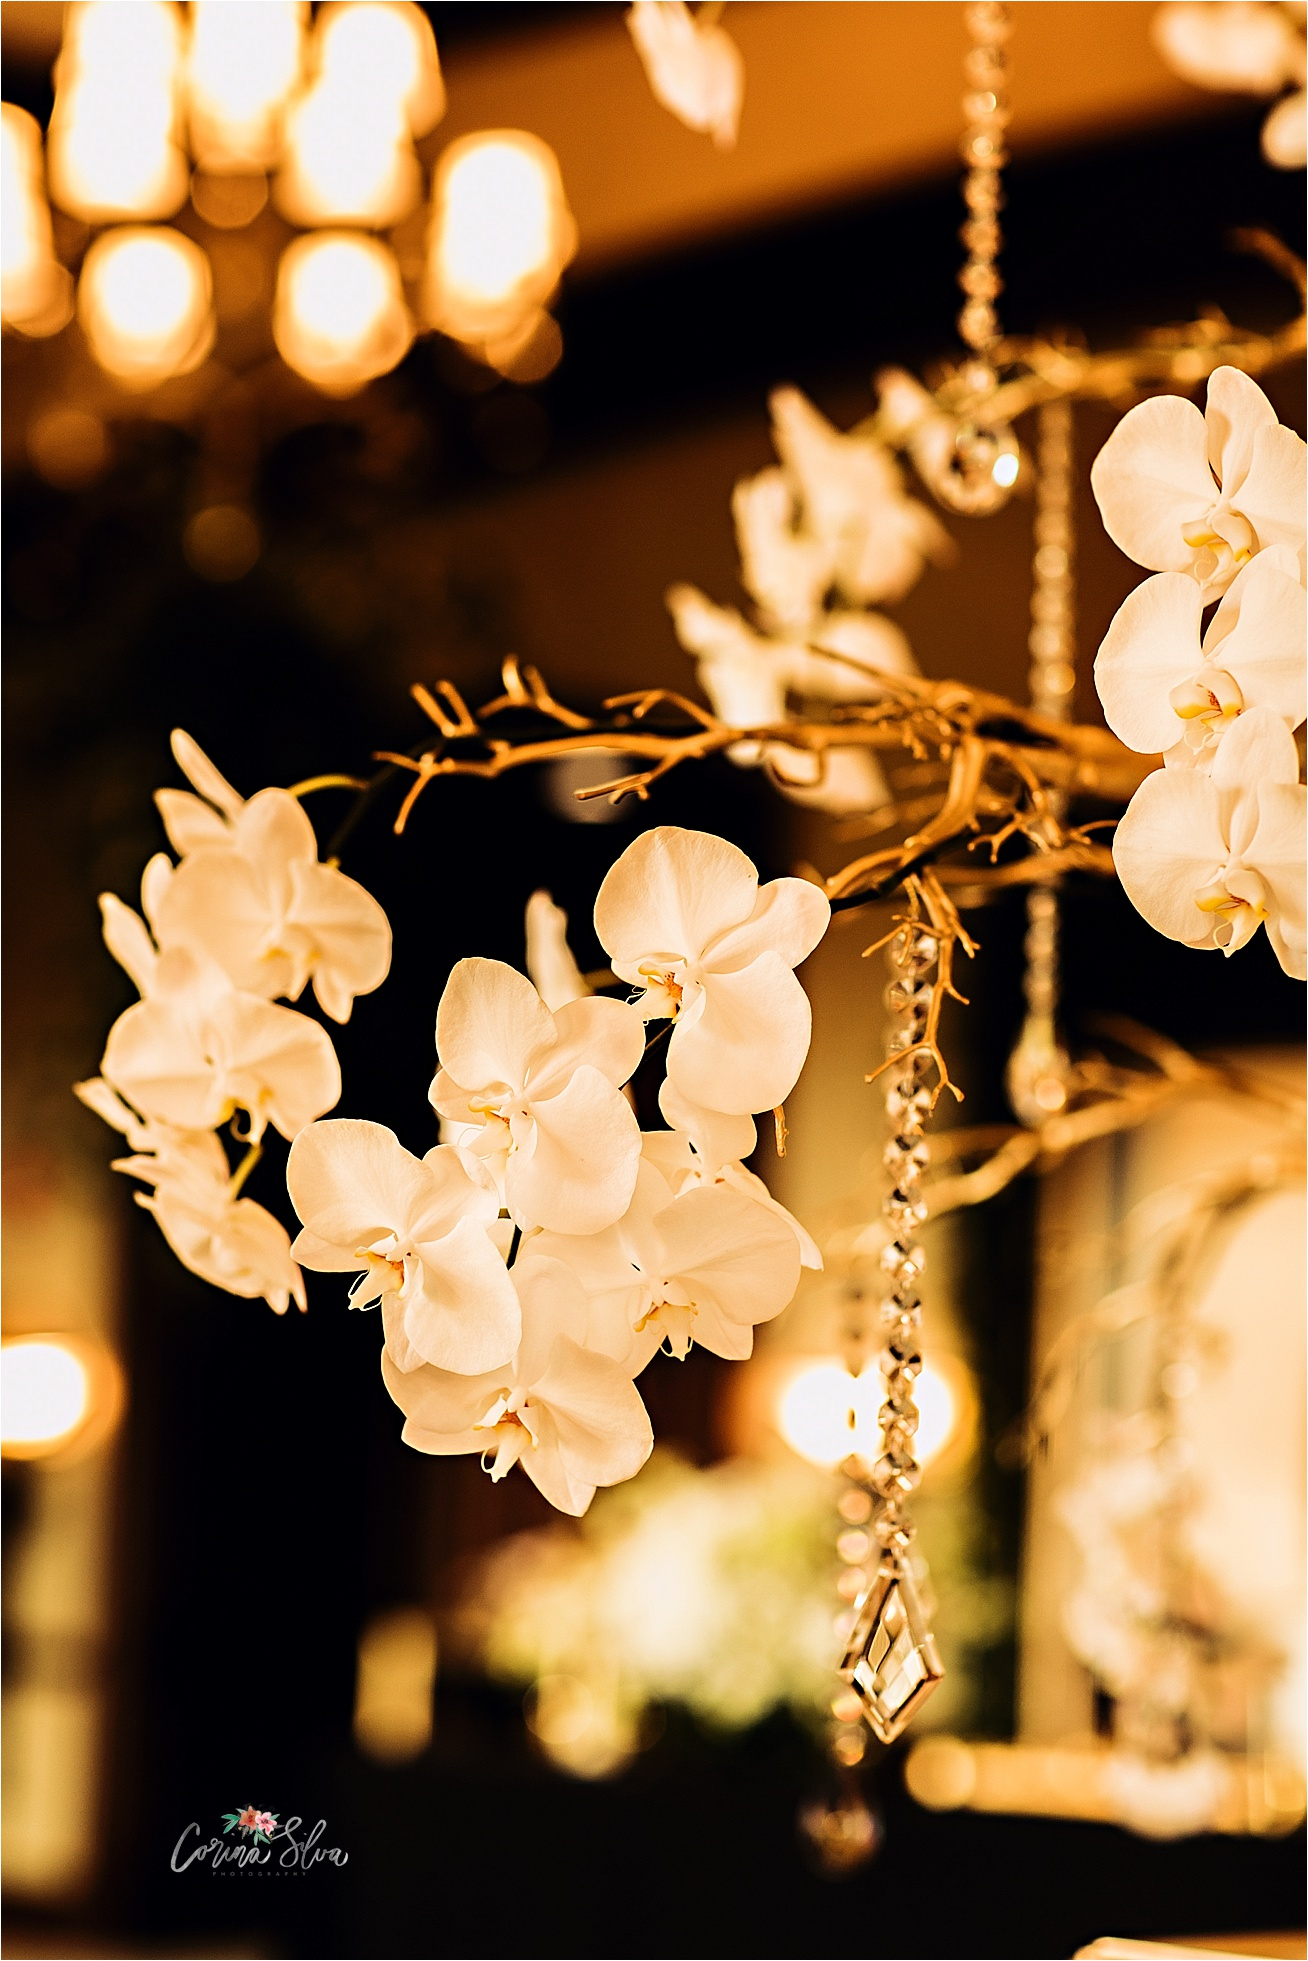 RSG-Event-and-Designs-luxury-wedding-decor-photos, Corina-Silva-Studios_0007.jpg